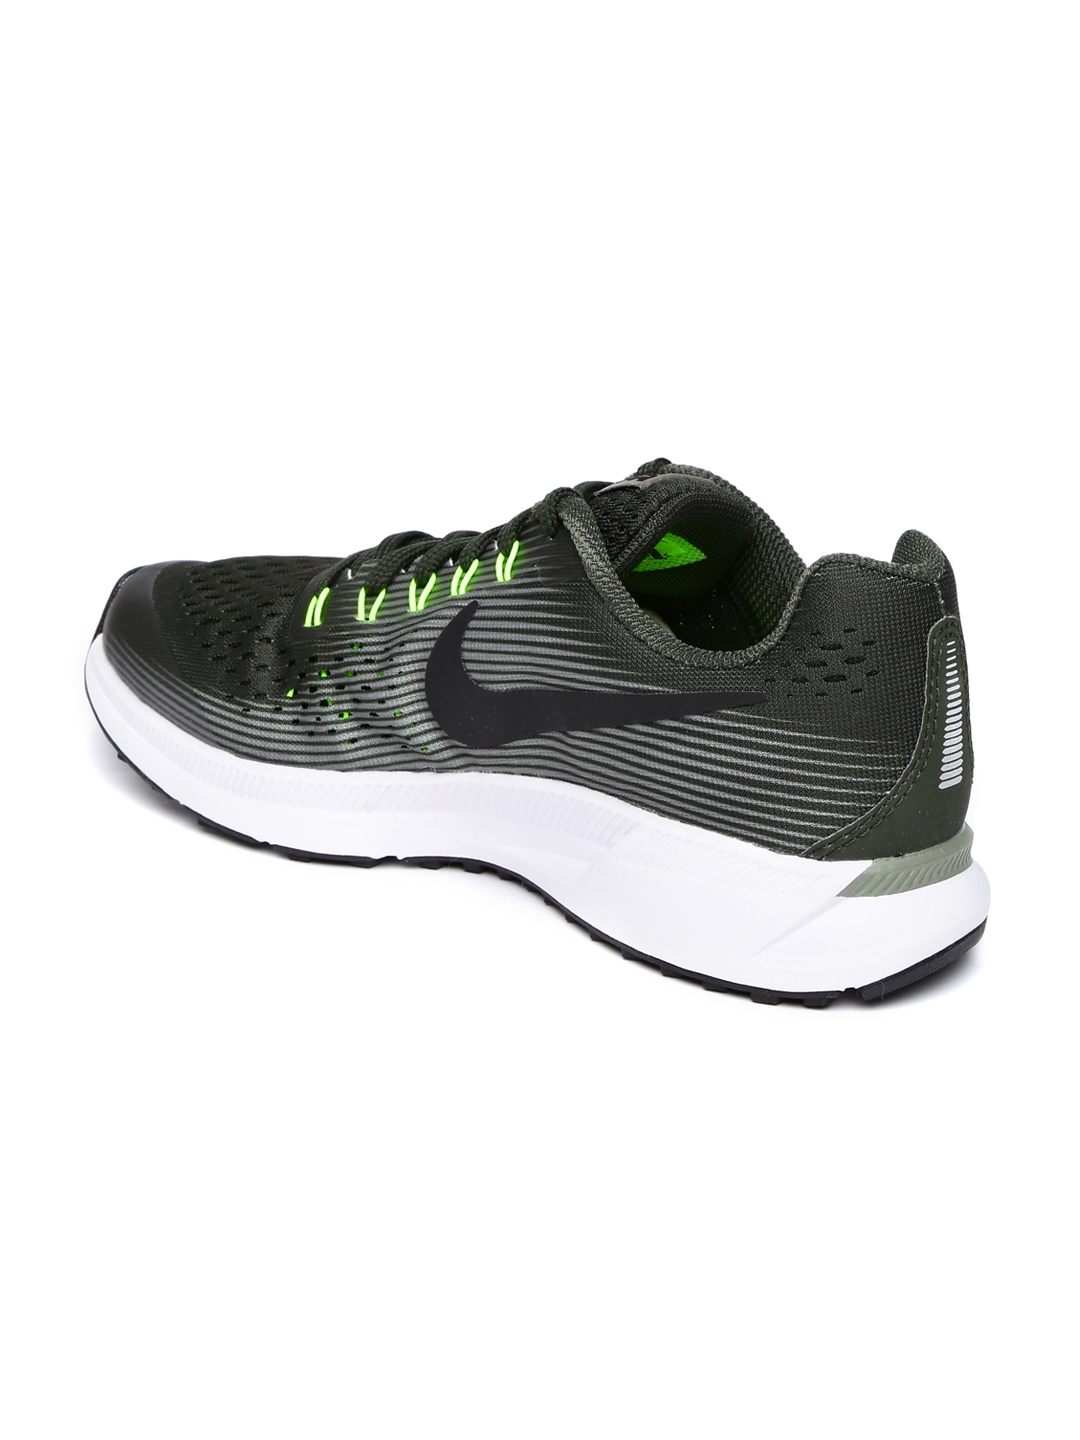 70ad48a45bf2 Buy Nike Boys Olive Green ZOOM PEGASUS 34 Running Shoes - Sports ...